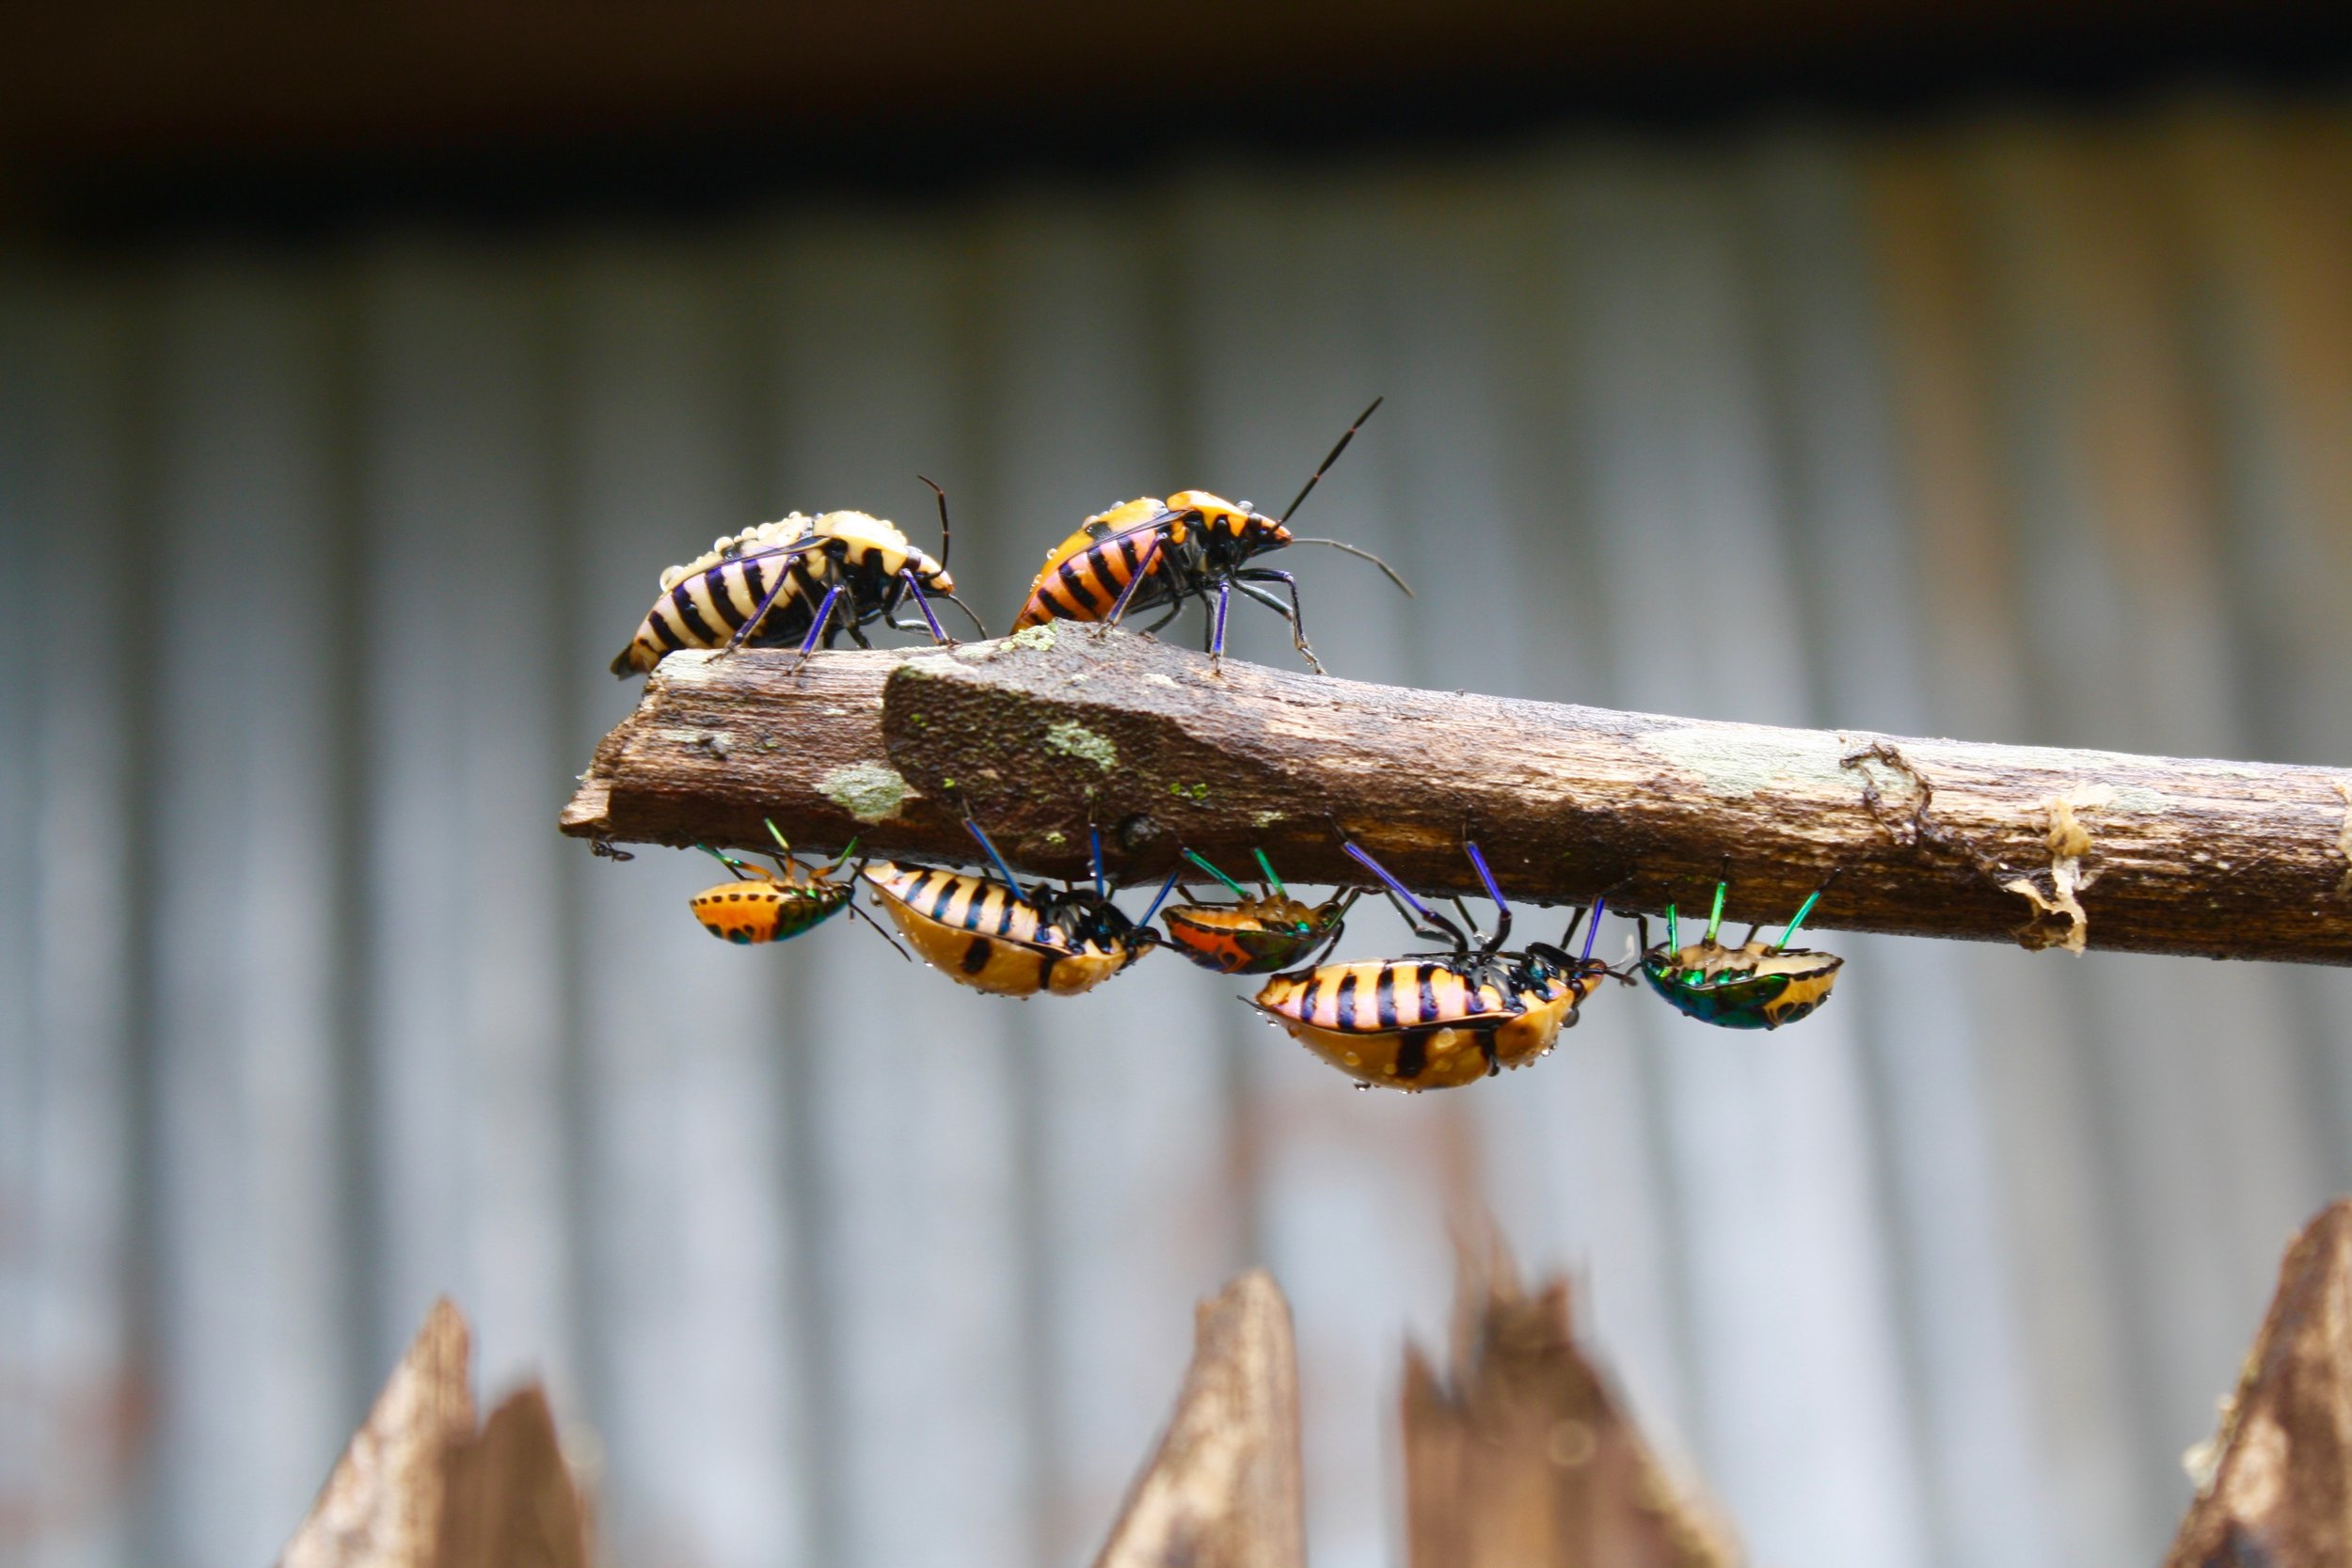 Rainbow beetles near Inlay lake in Myanmar. Travel photography from Burma.